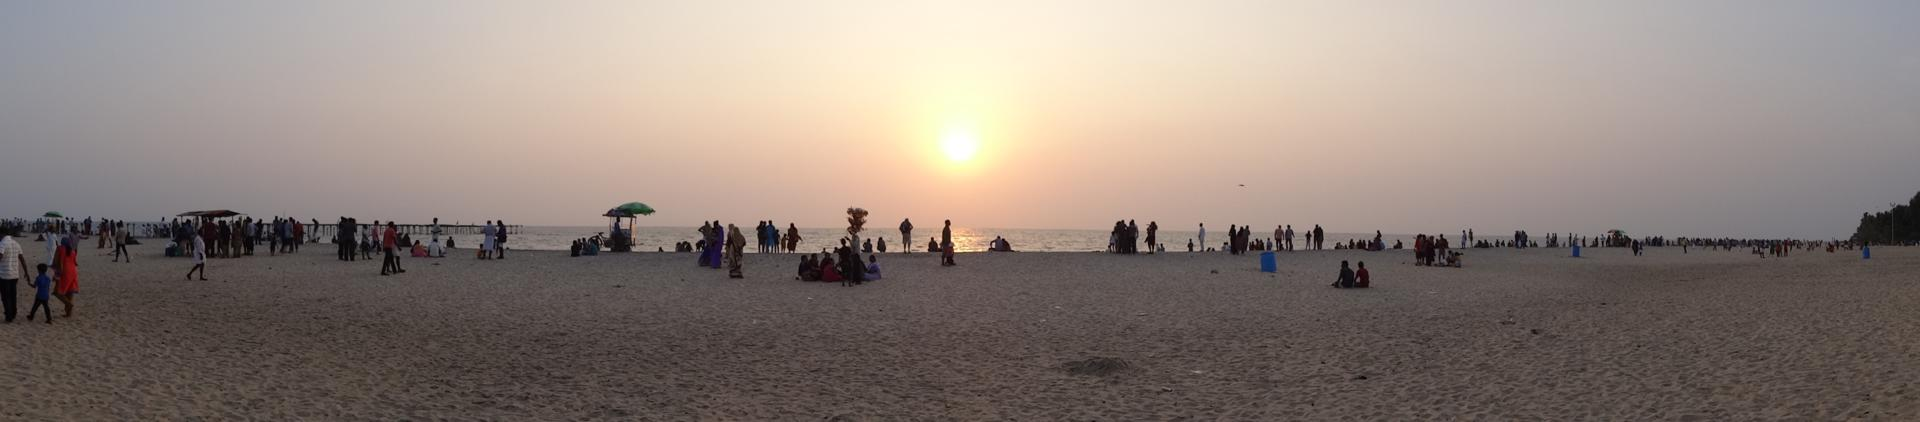 Sunset at Alleppey Beach on the Malabar Coast, Kerala. Locals and tourists gather to watch the setting sun.